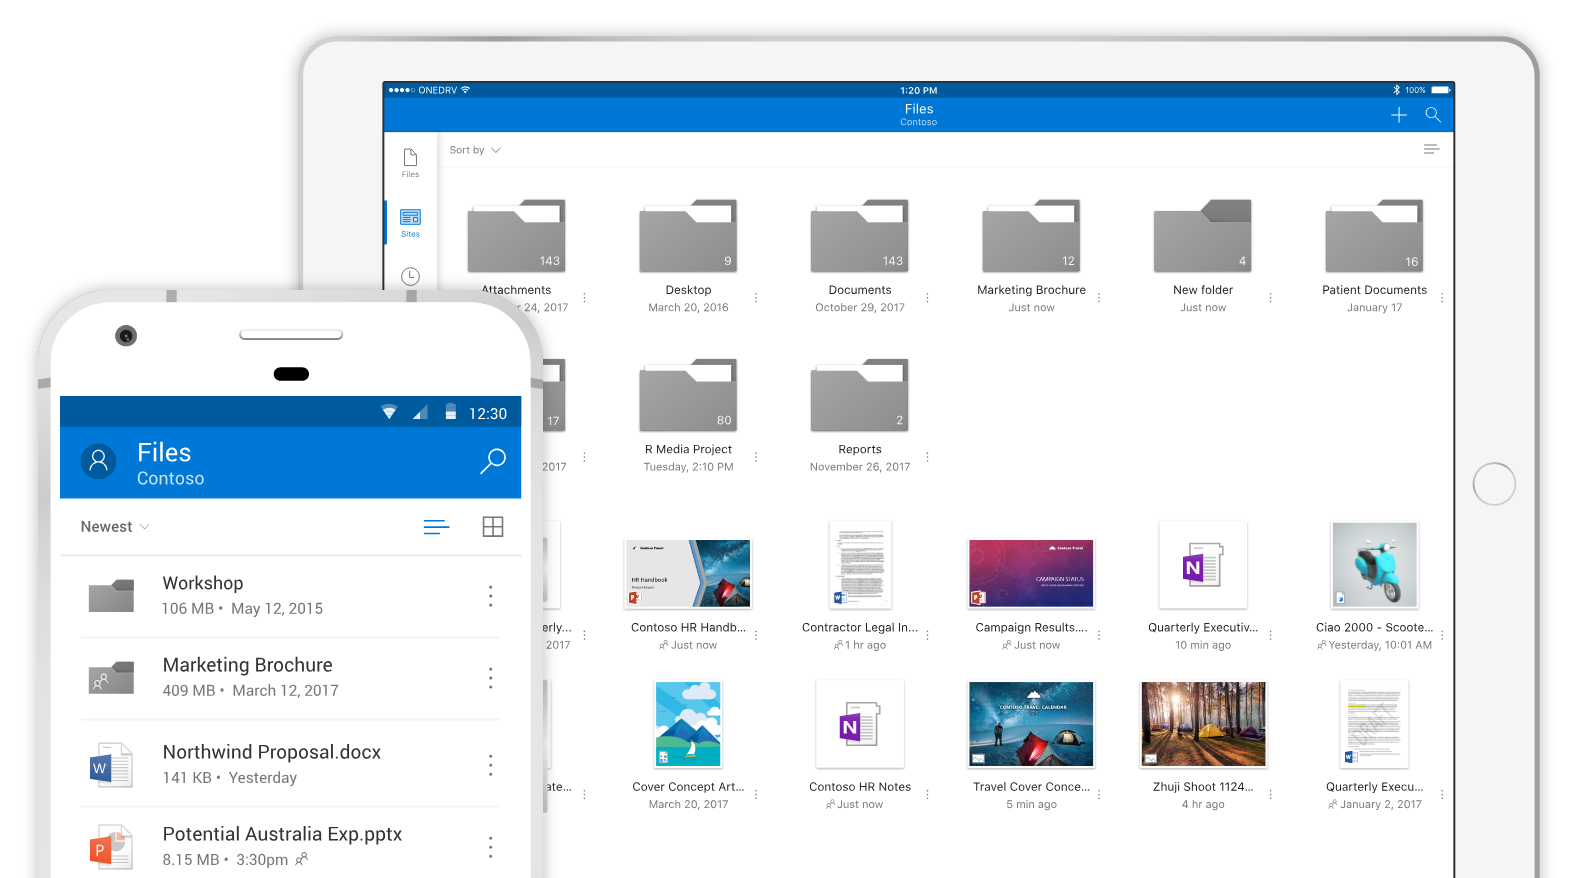 Feature Suggestions for Microsoft OneDrive